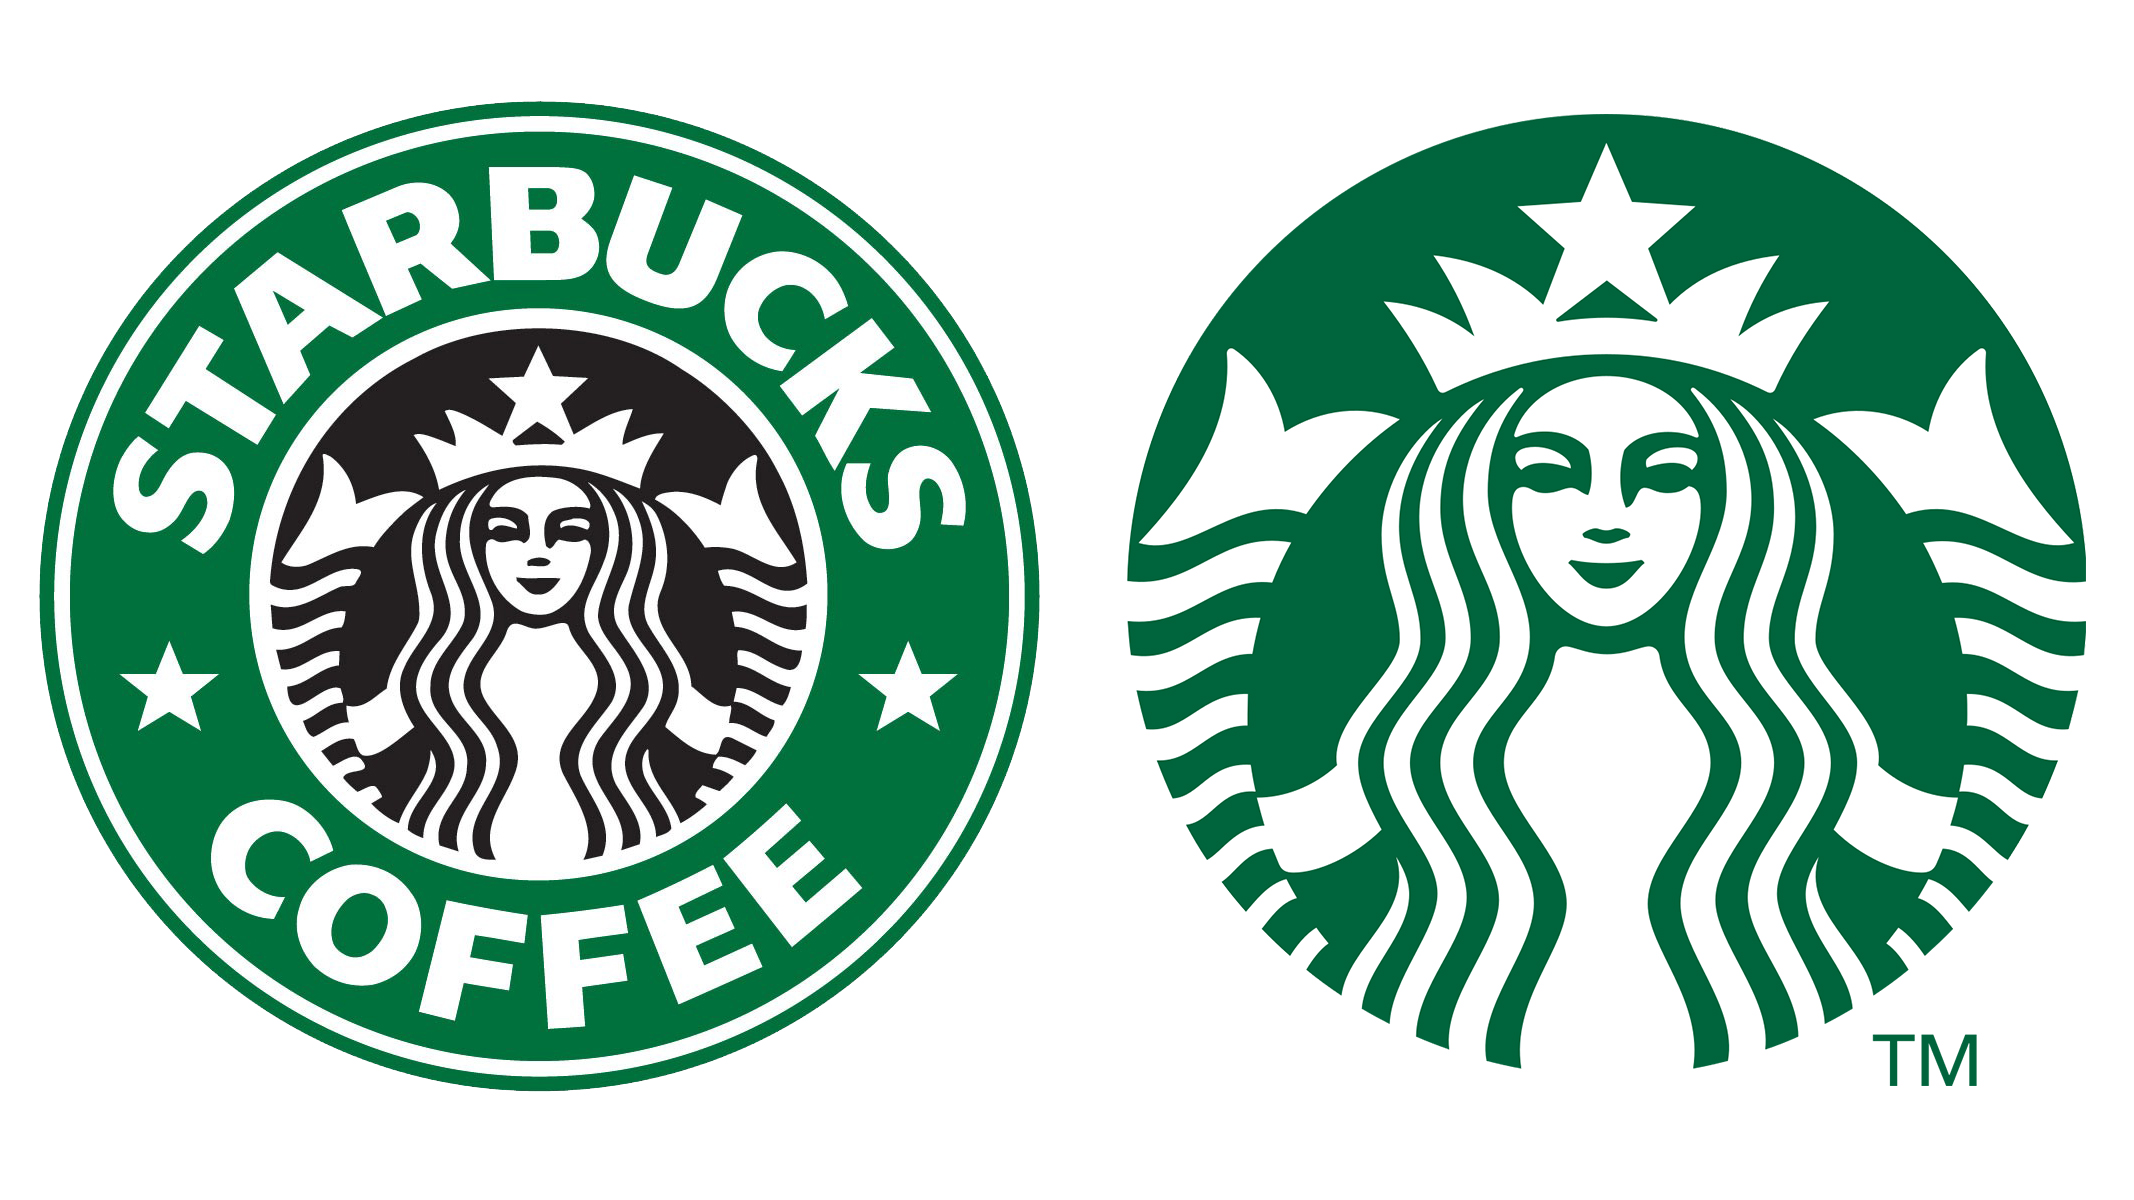 Starbucks logo before and after